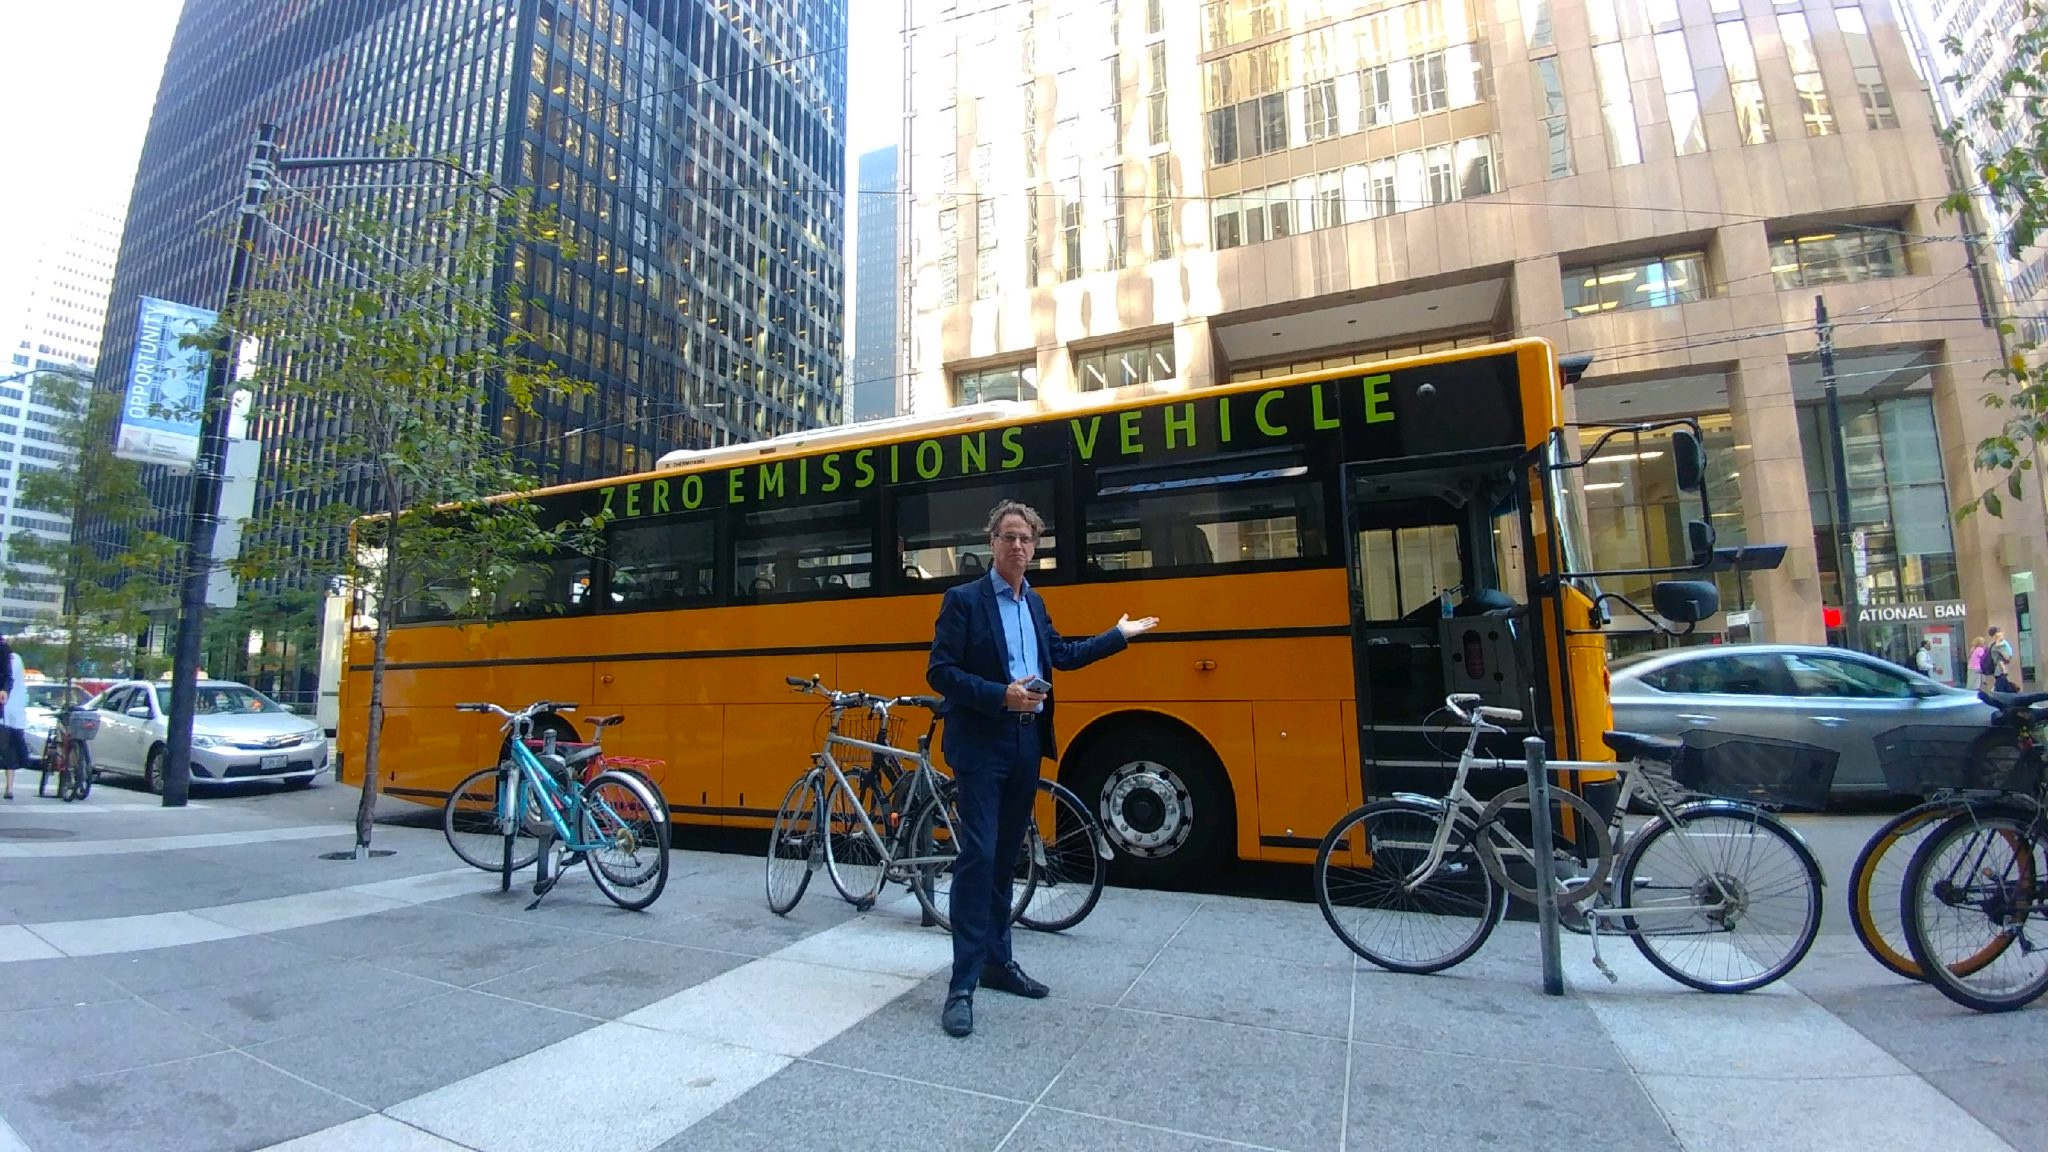 GreenPower unveiled its Synapse 72 all-electric school bus on Oct. 5, 2017 in downtown Vancouver and conducted demonstration rides for local schools.